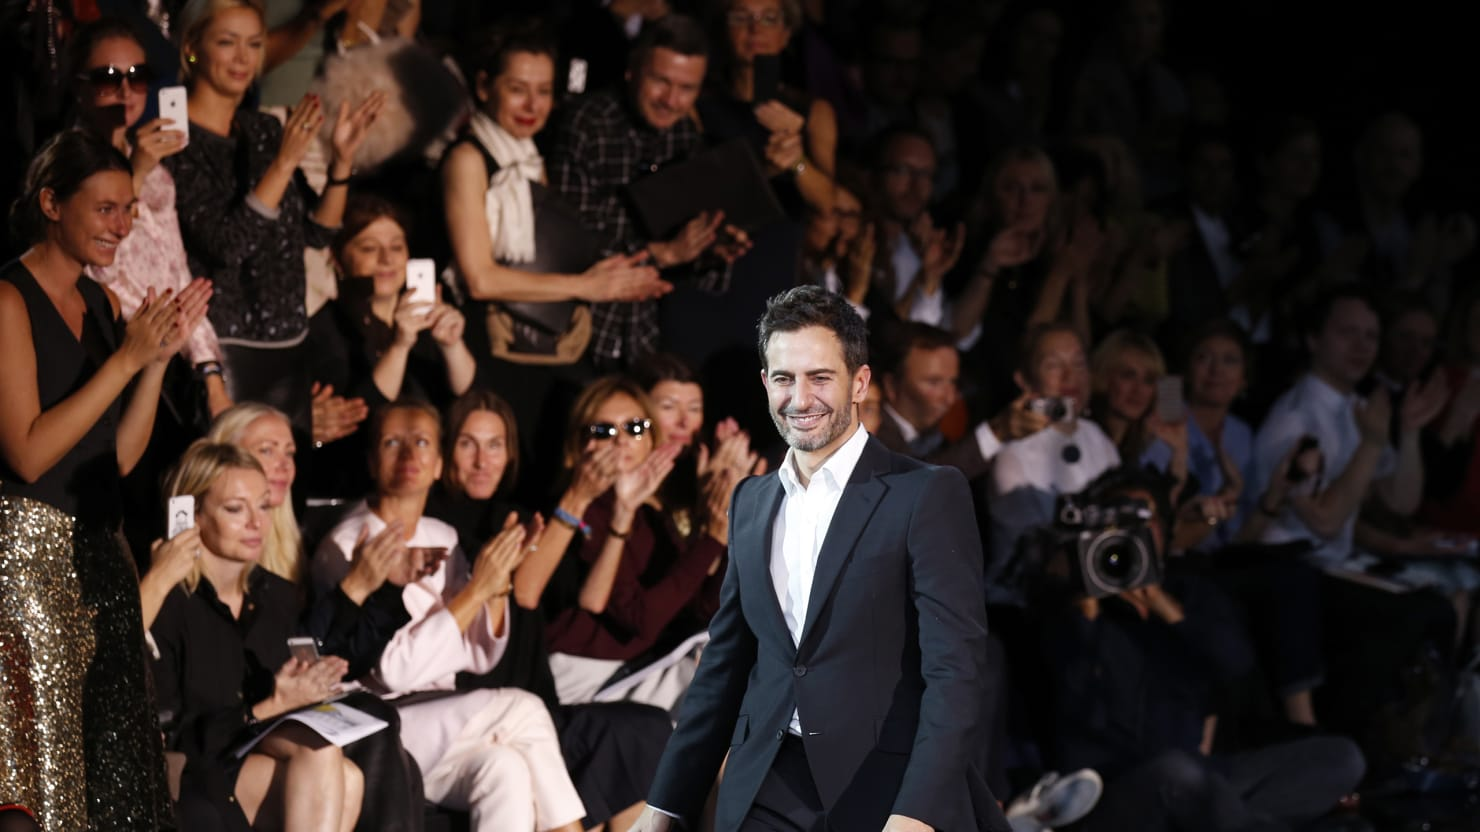 Marc Jacobs Leaves Louis Vuitton After 16 Years